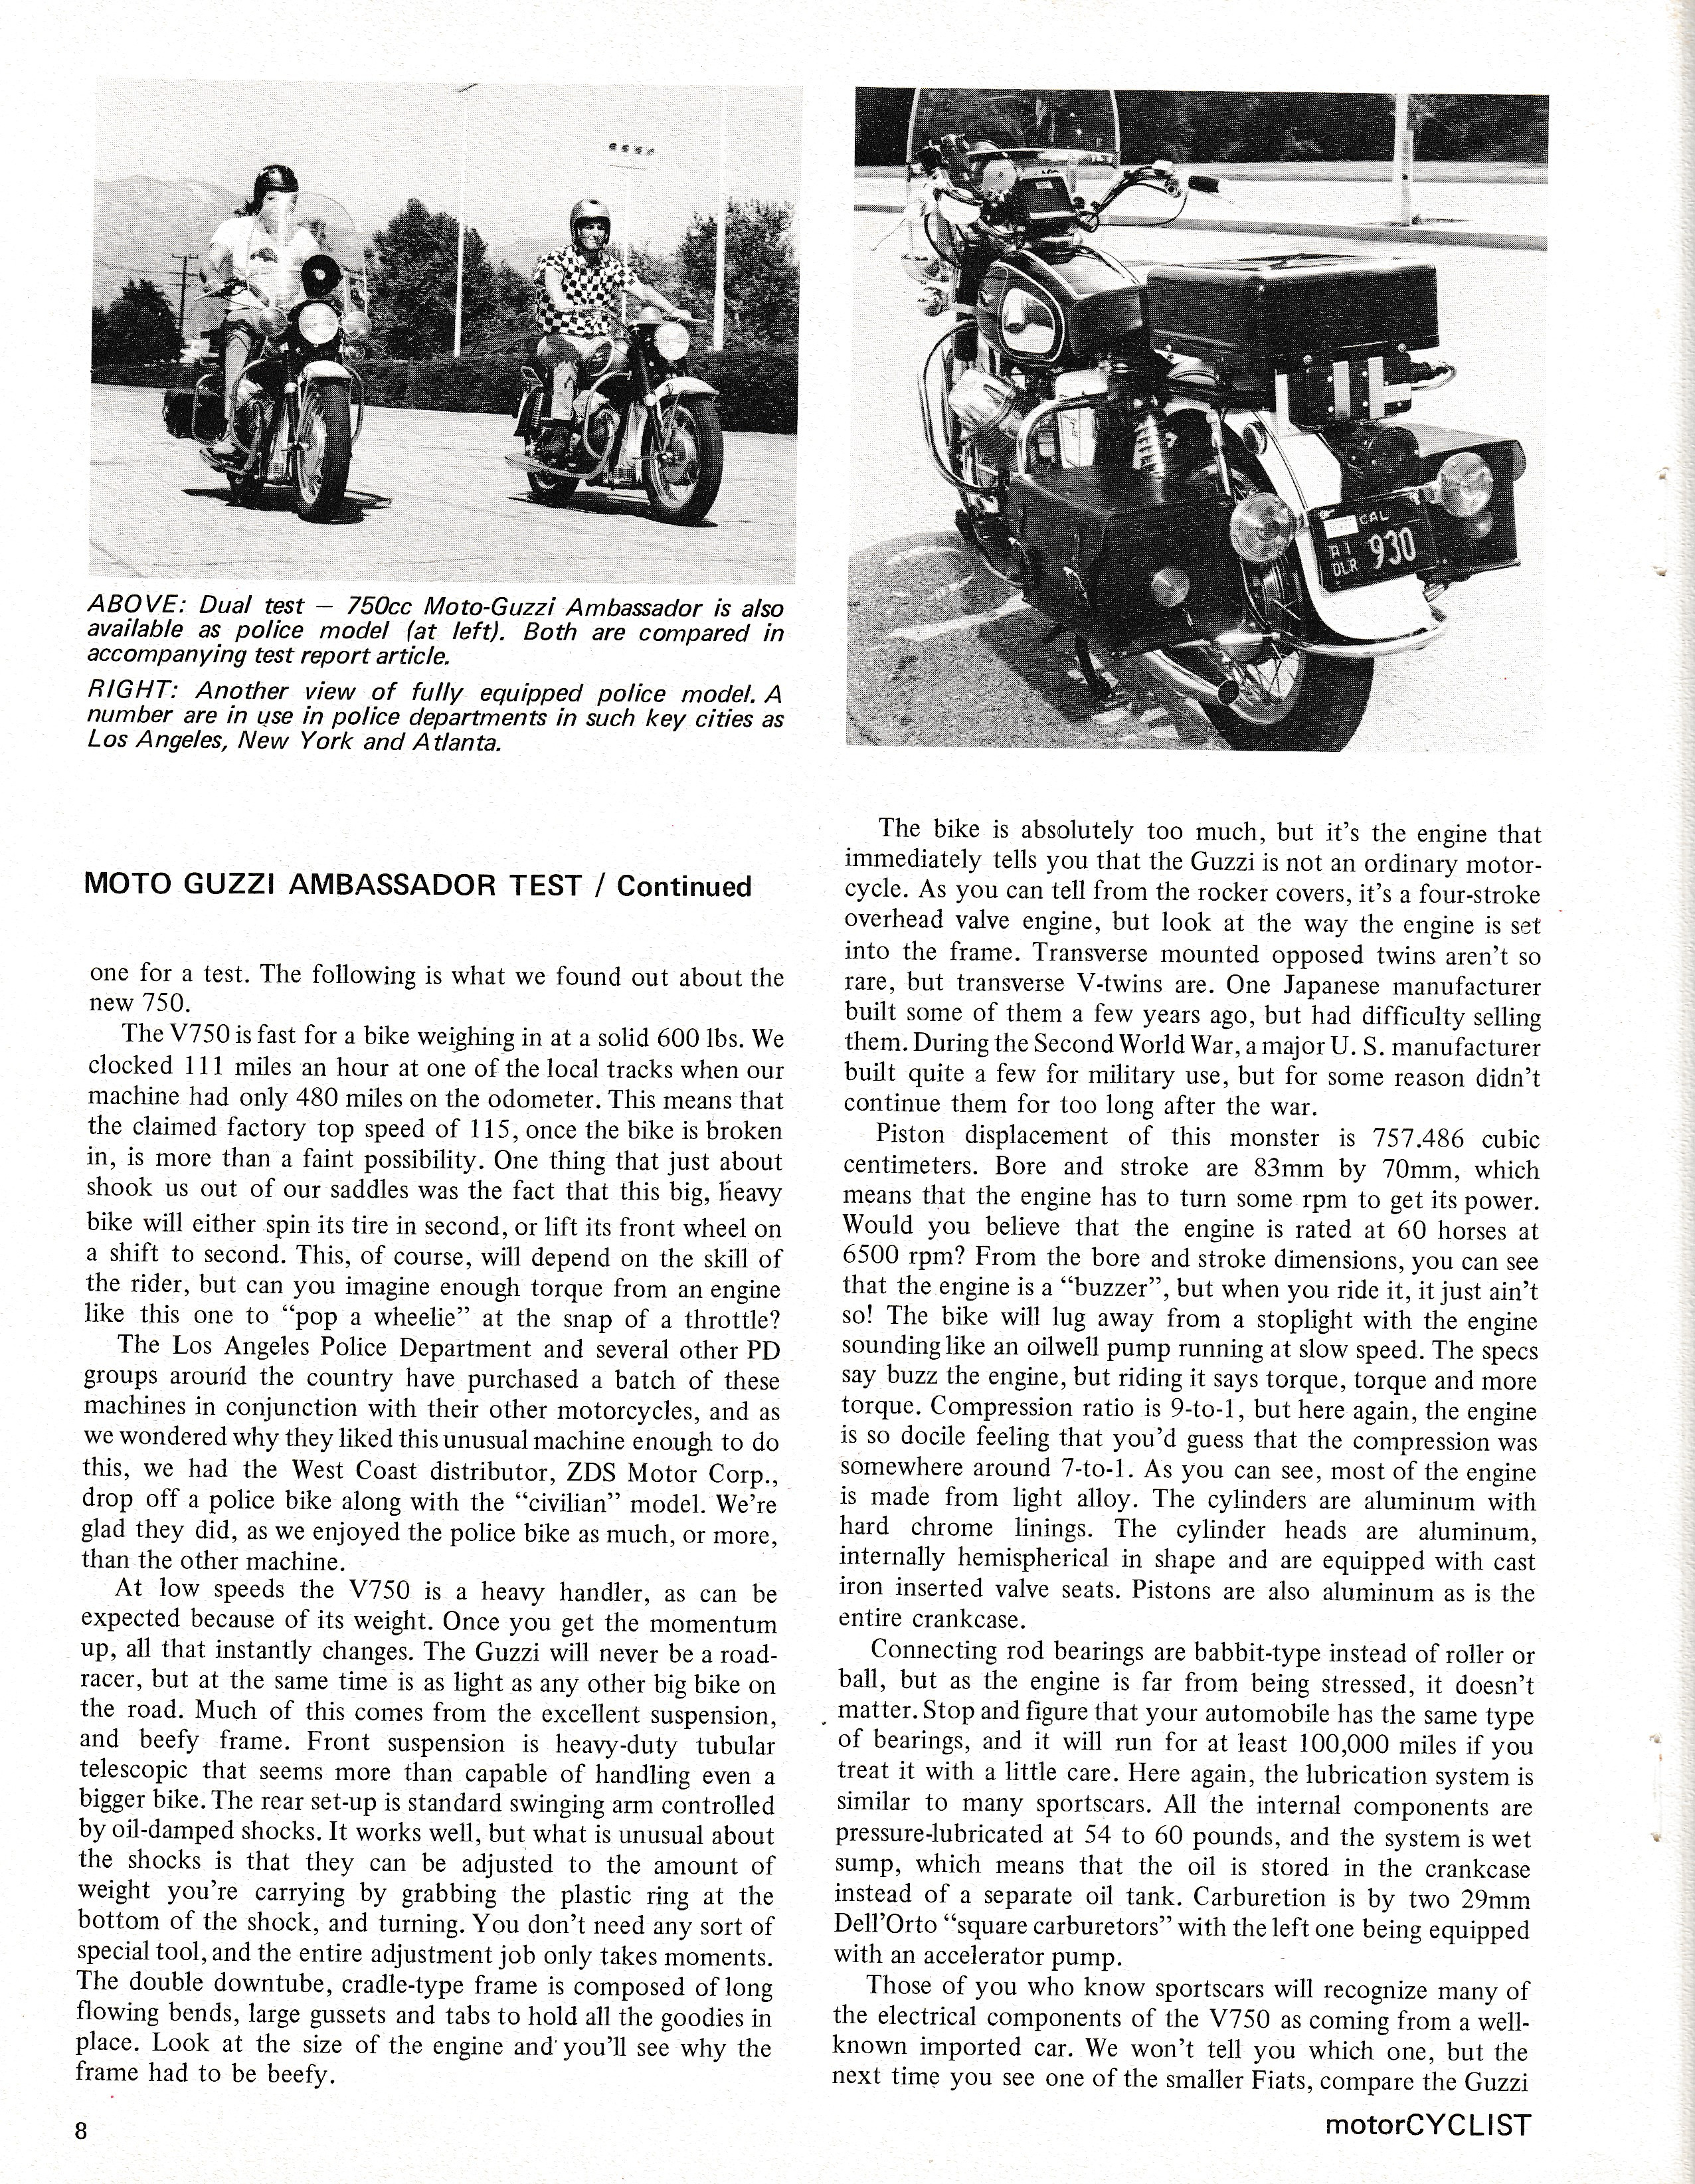 Moto Guzzi Ambassador factory brochure of magazine reviews, Page 8 of 16.